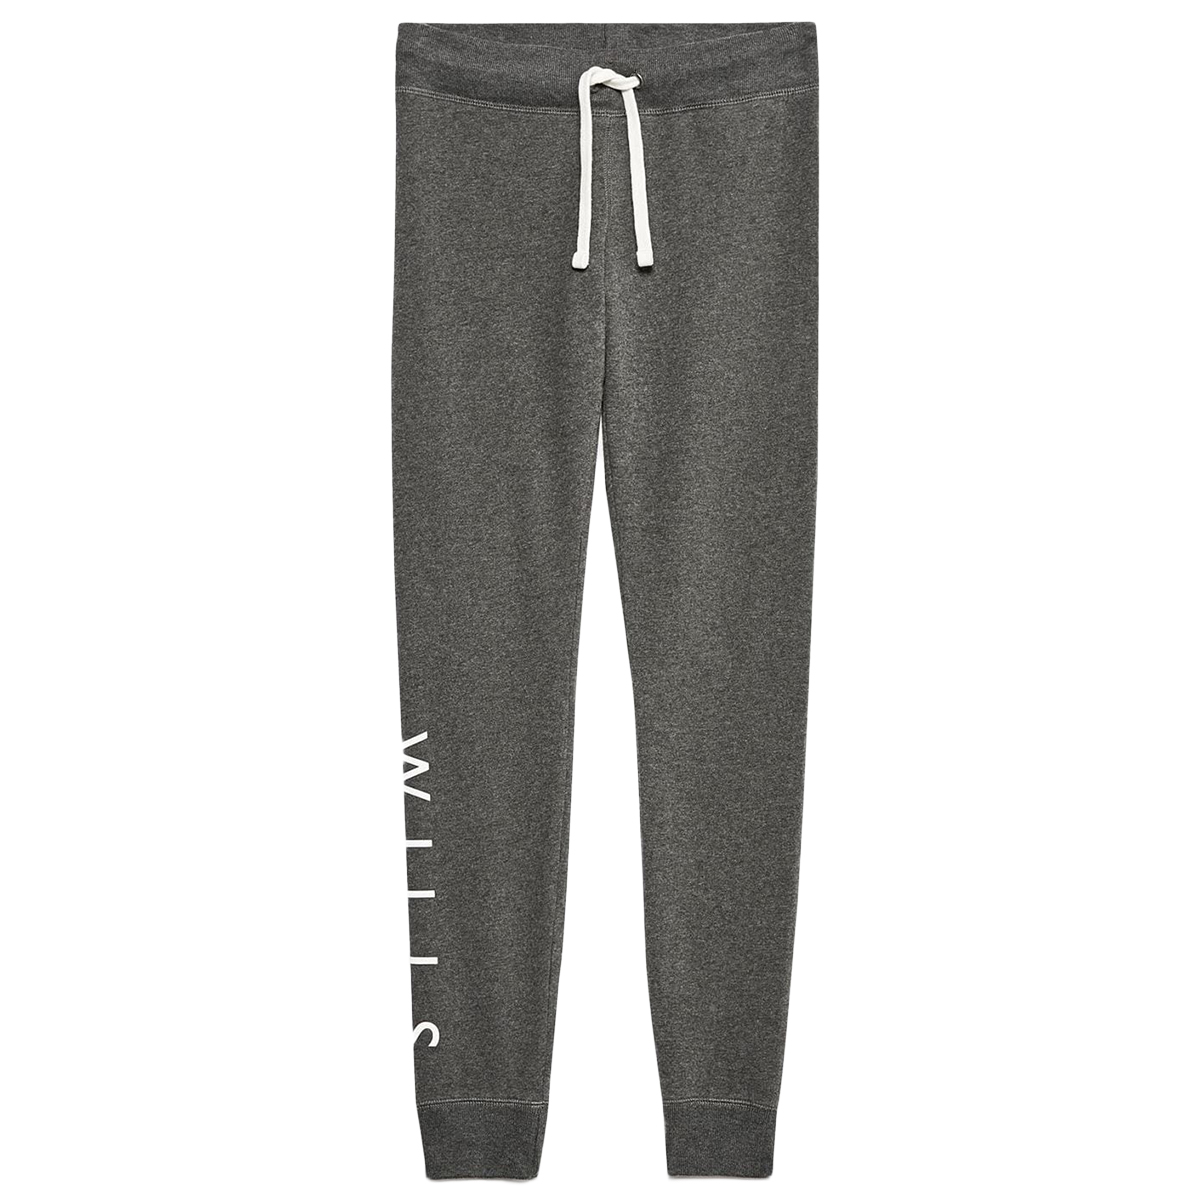 Jack Wills Women's Lingham Soft Skinny Joggers - Black, 10